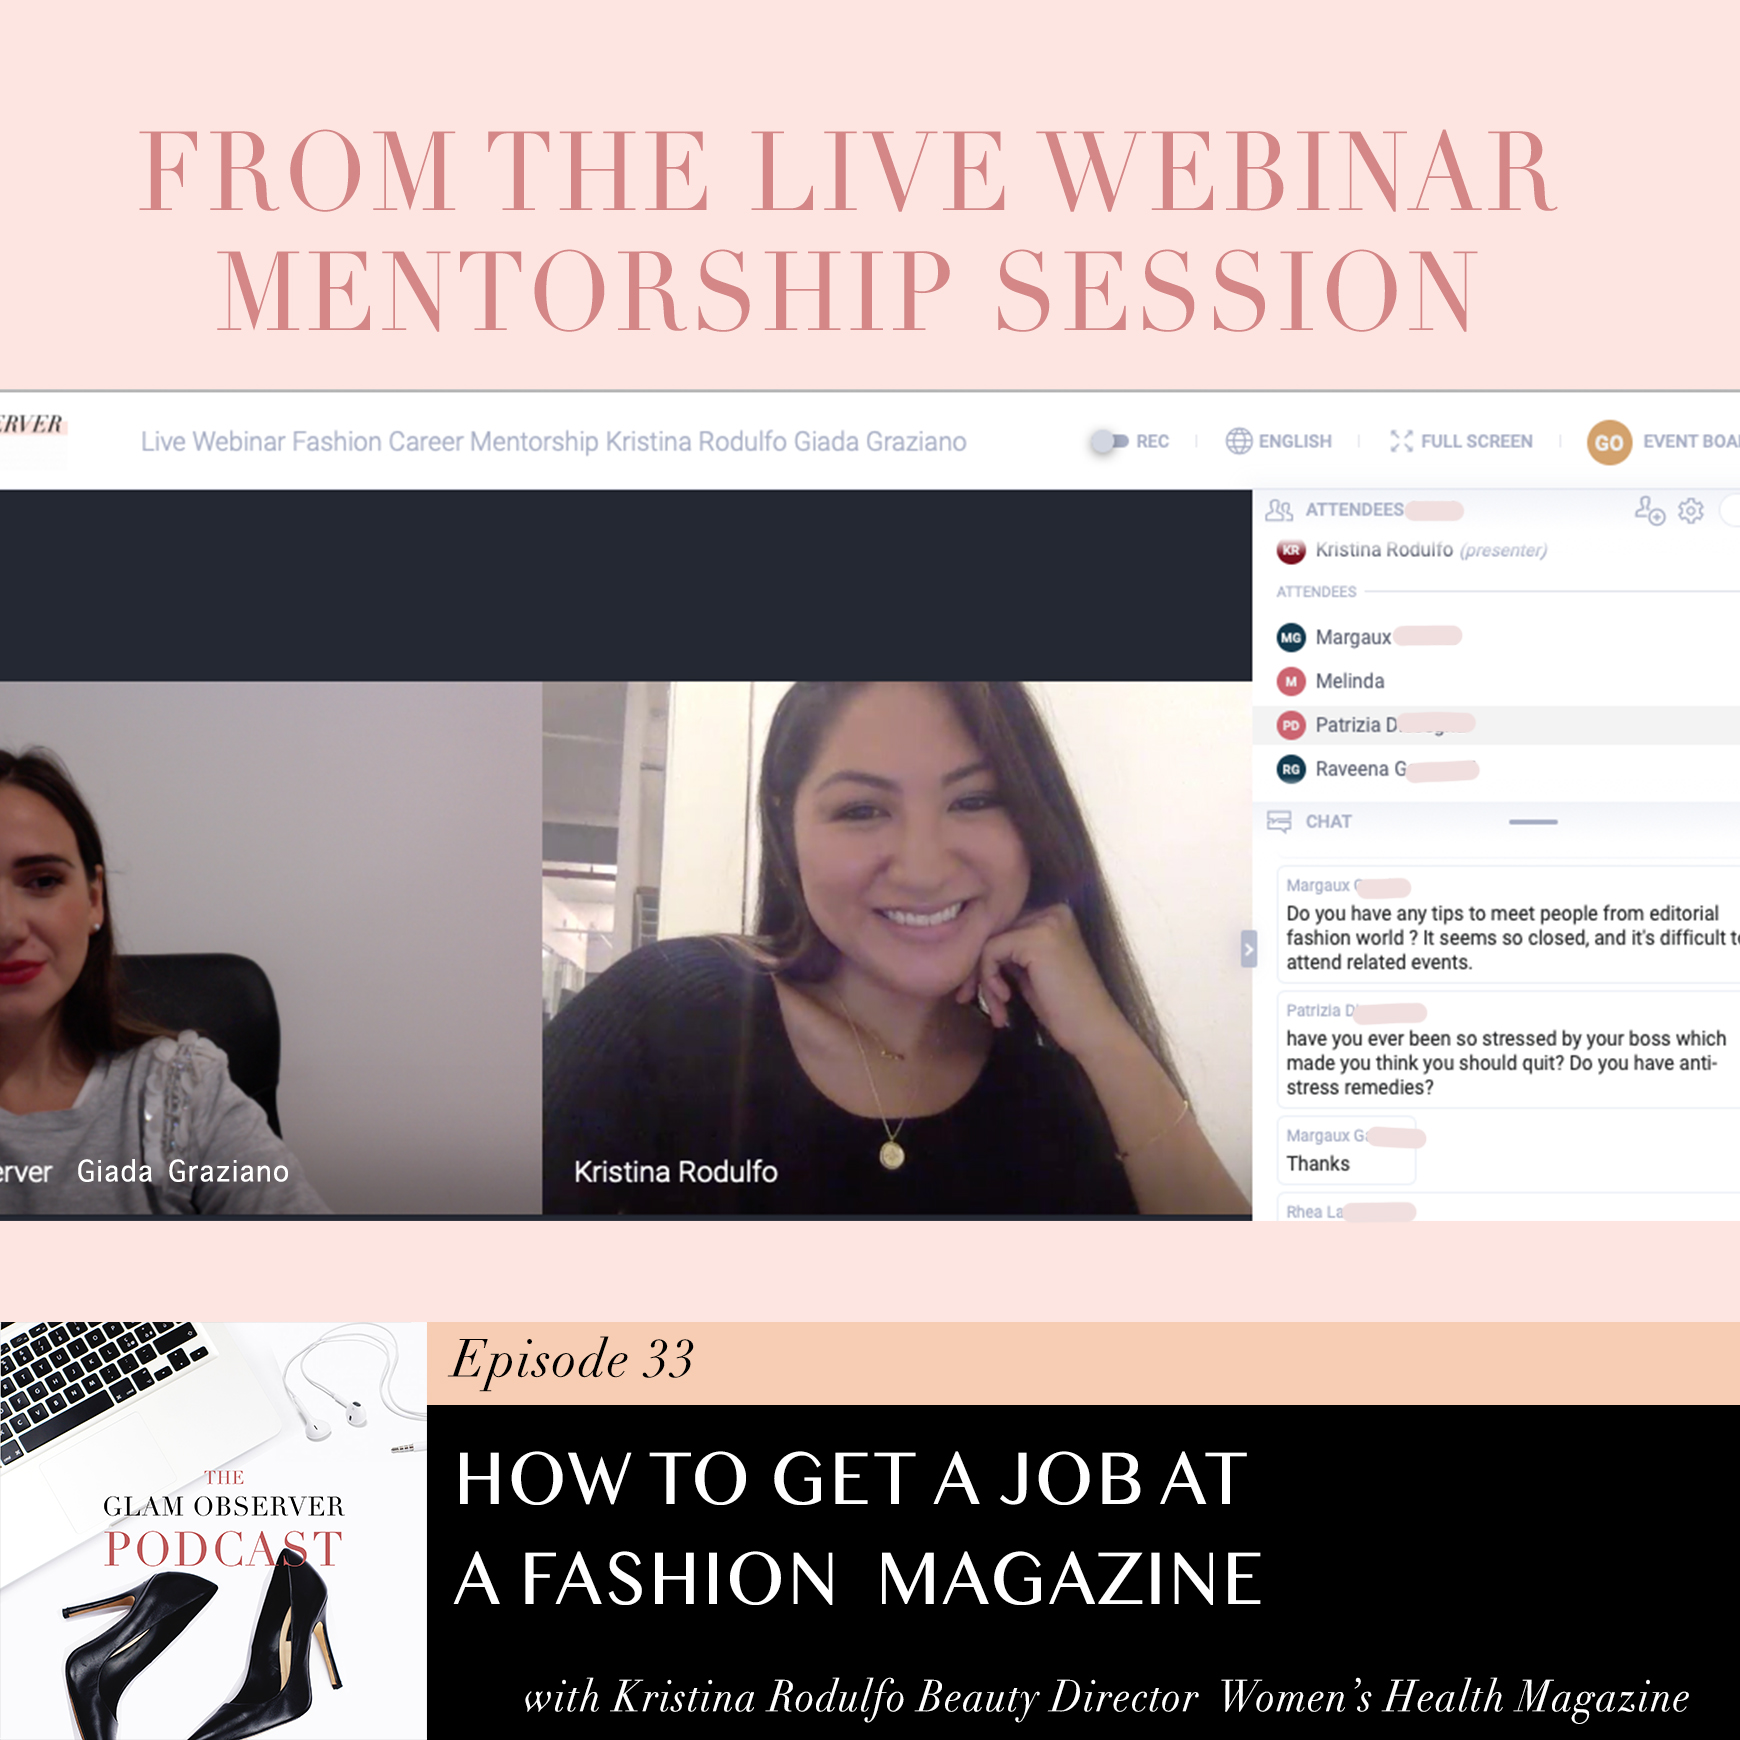 How To Get A Job At A Fashion Magazine Glam Observer